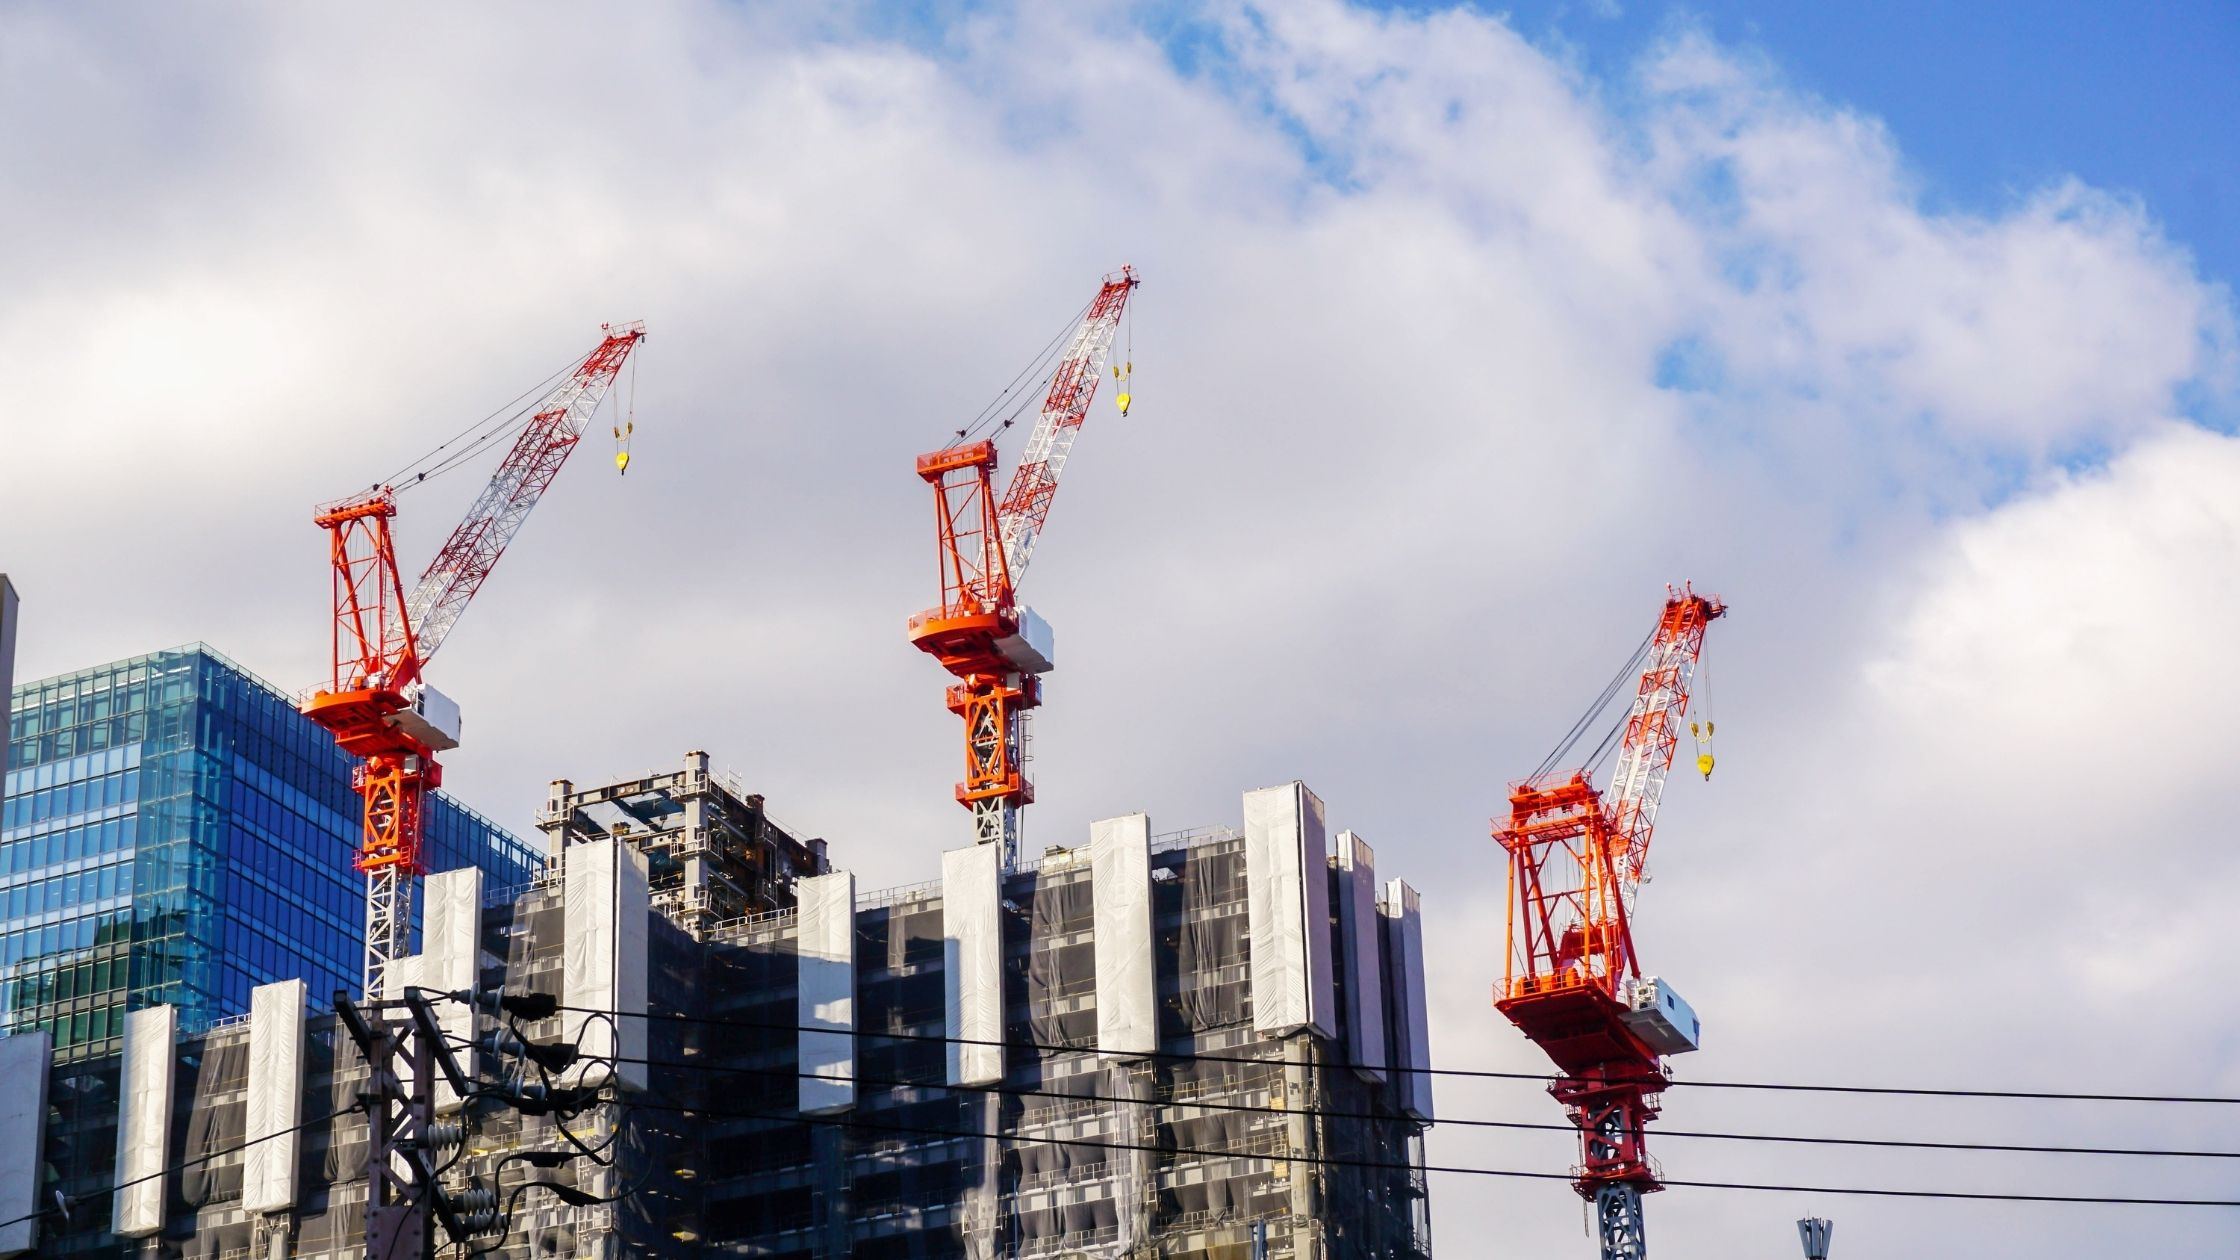 Benefits of innovating of hoist and lifts